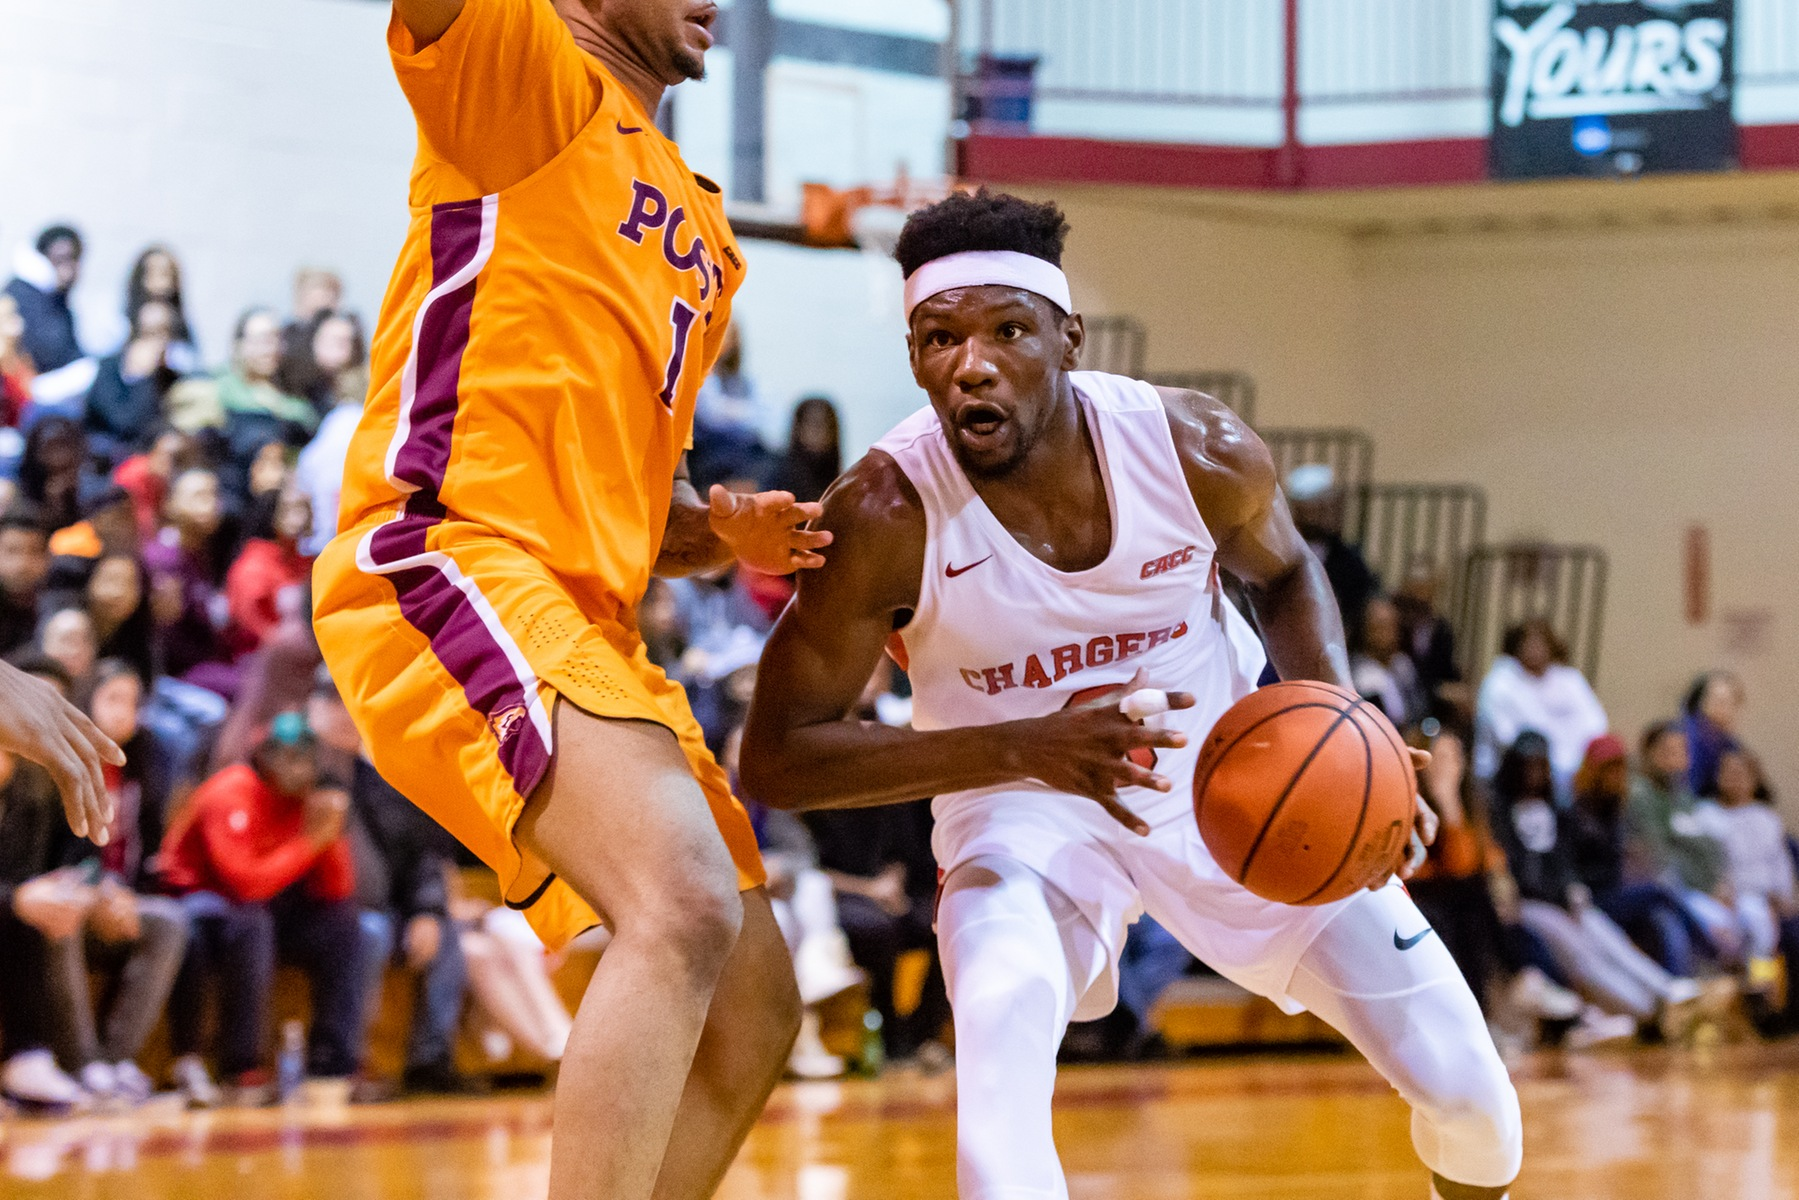 MEN'S BASKETBALL UPENDS CALDWELL UNIVERSITY